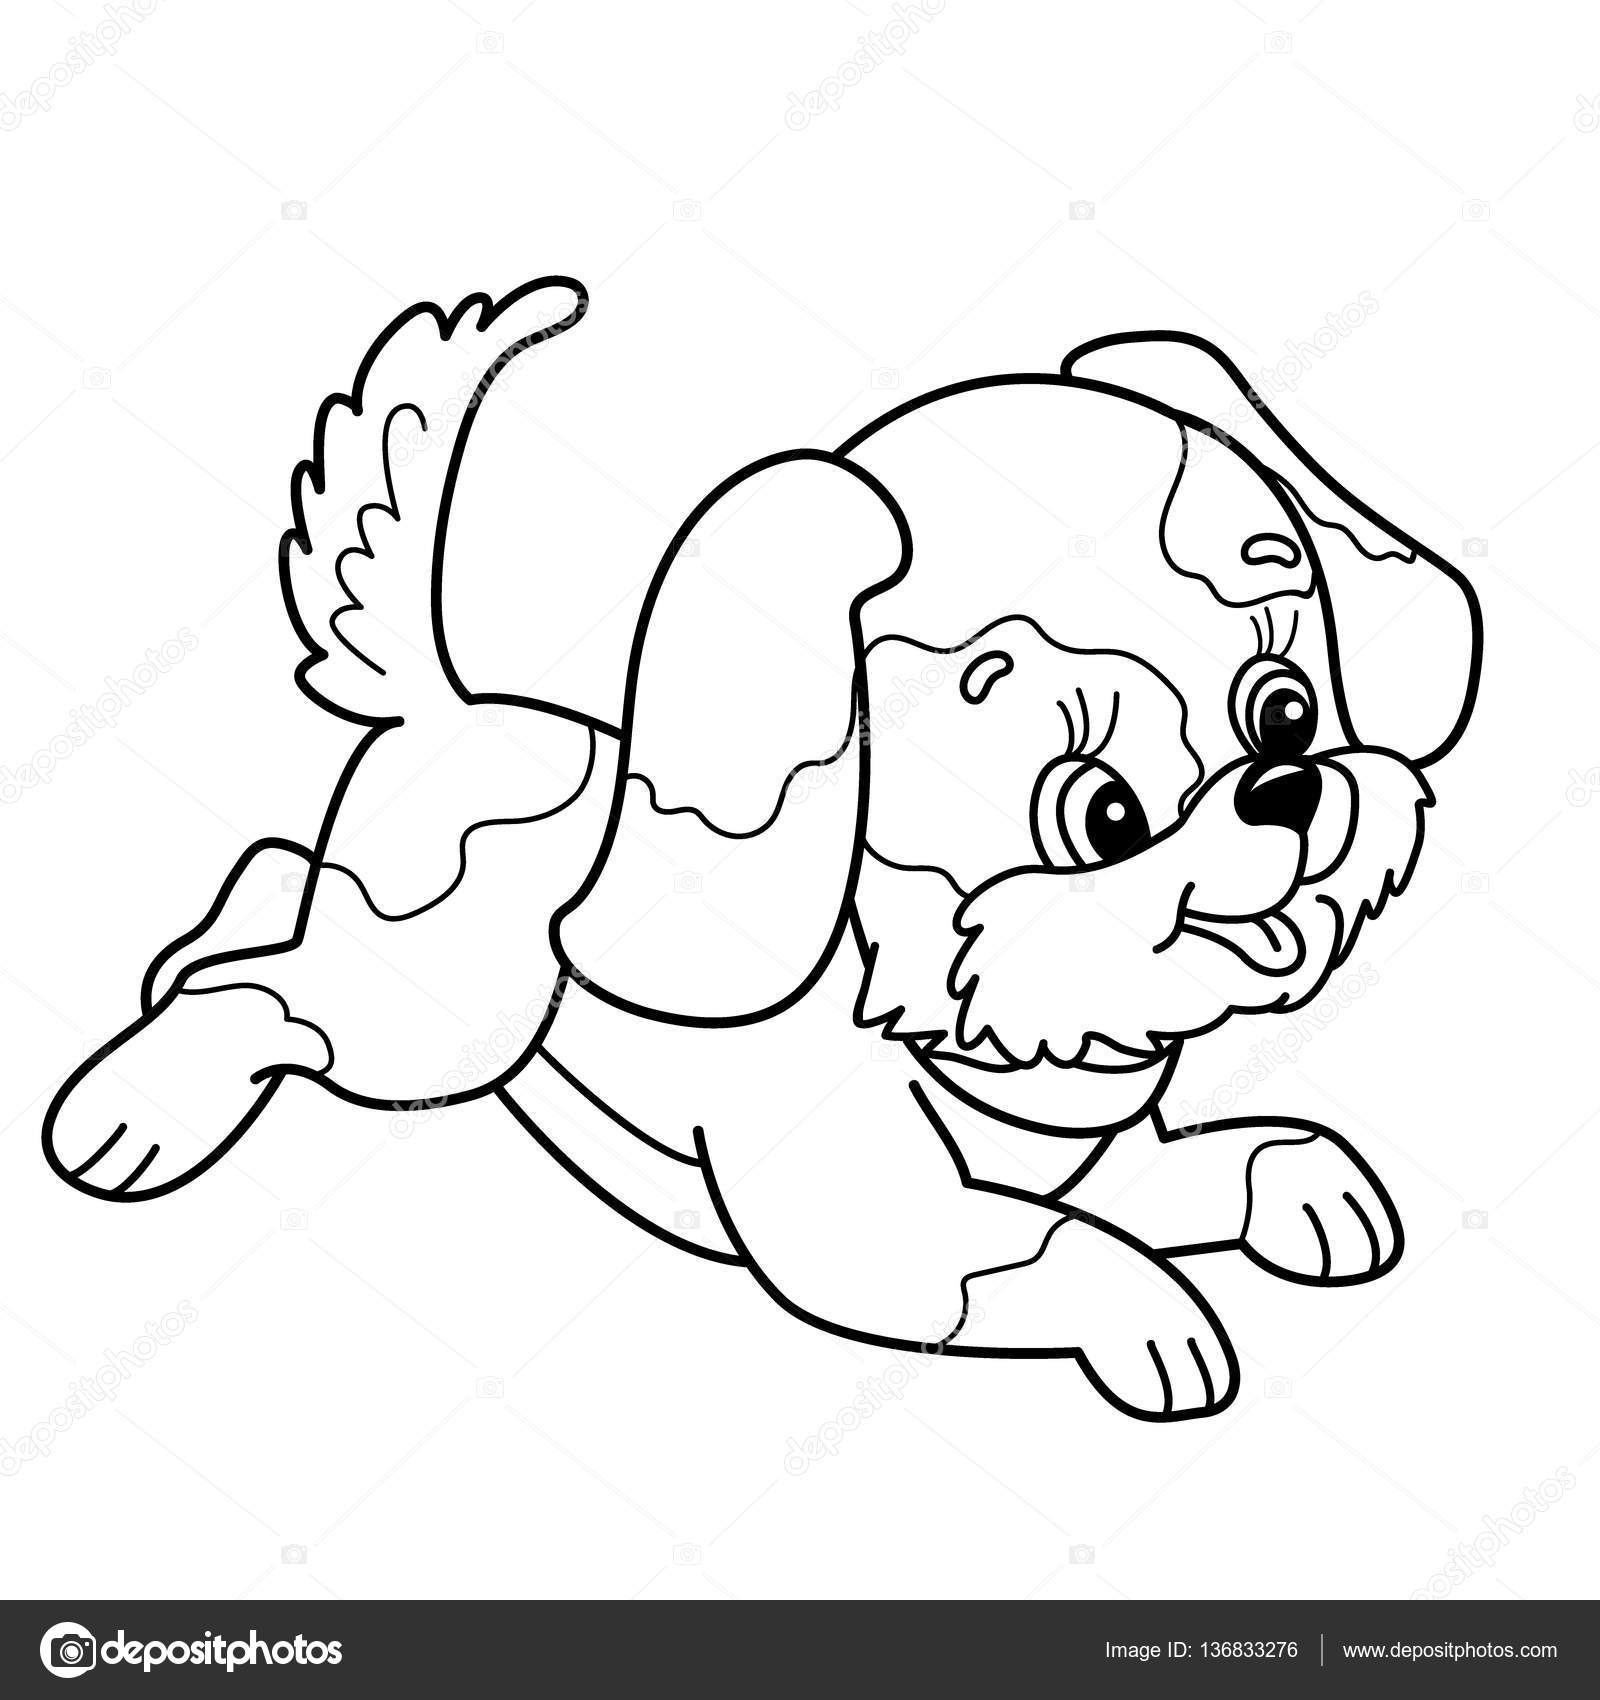 coloring page outline of cute puppy cartoon joyful dog jumping